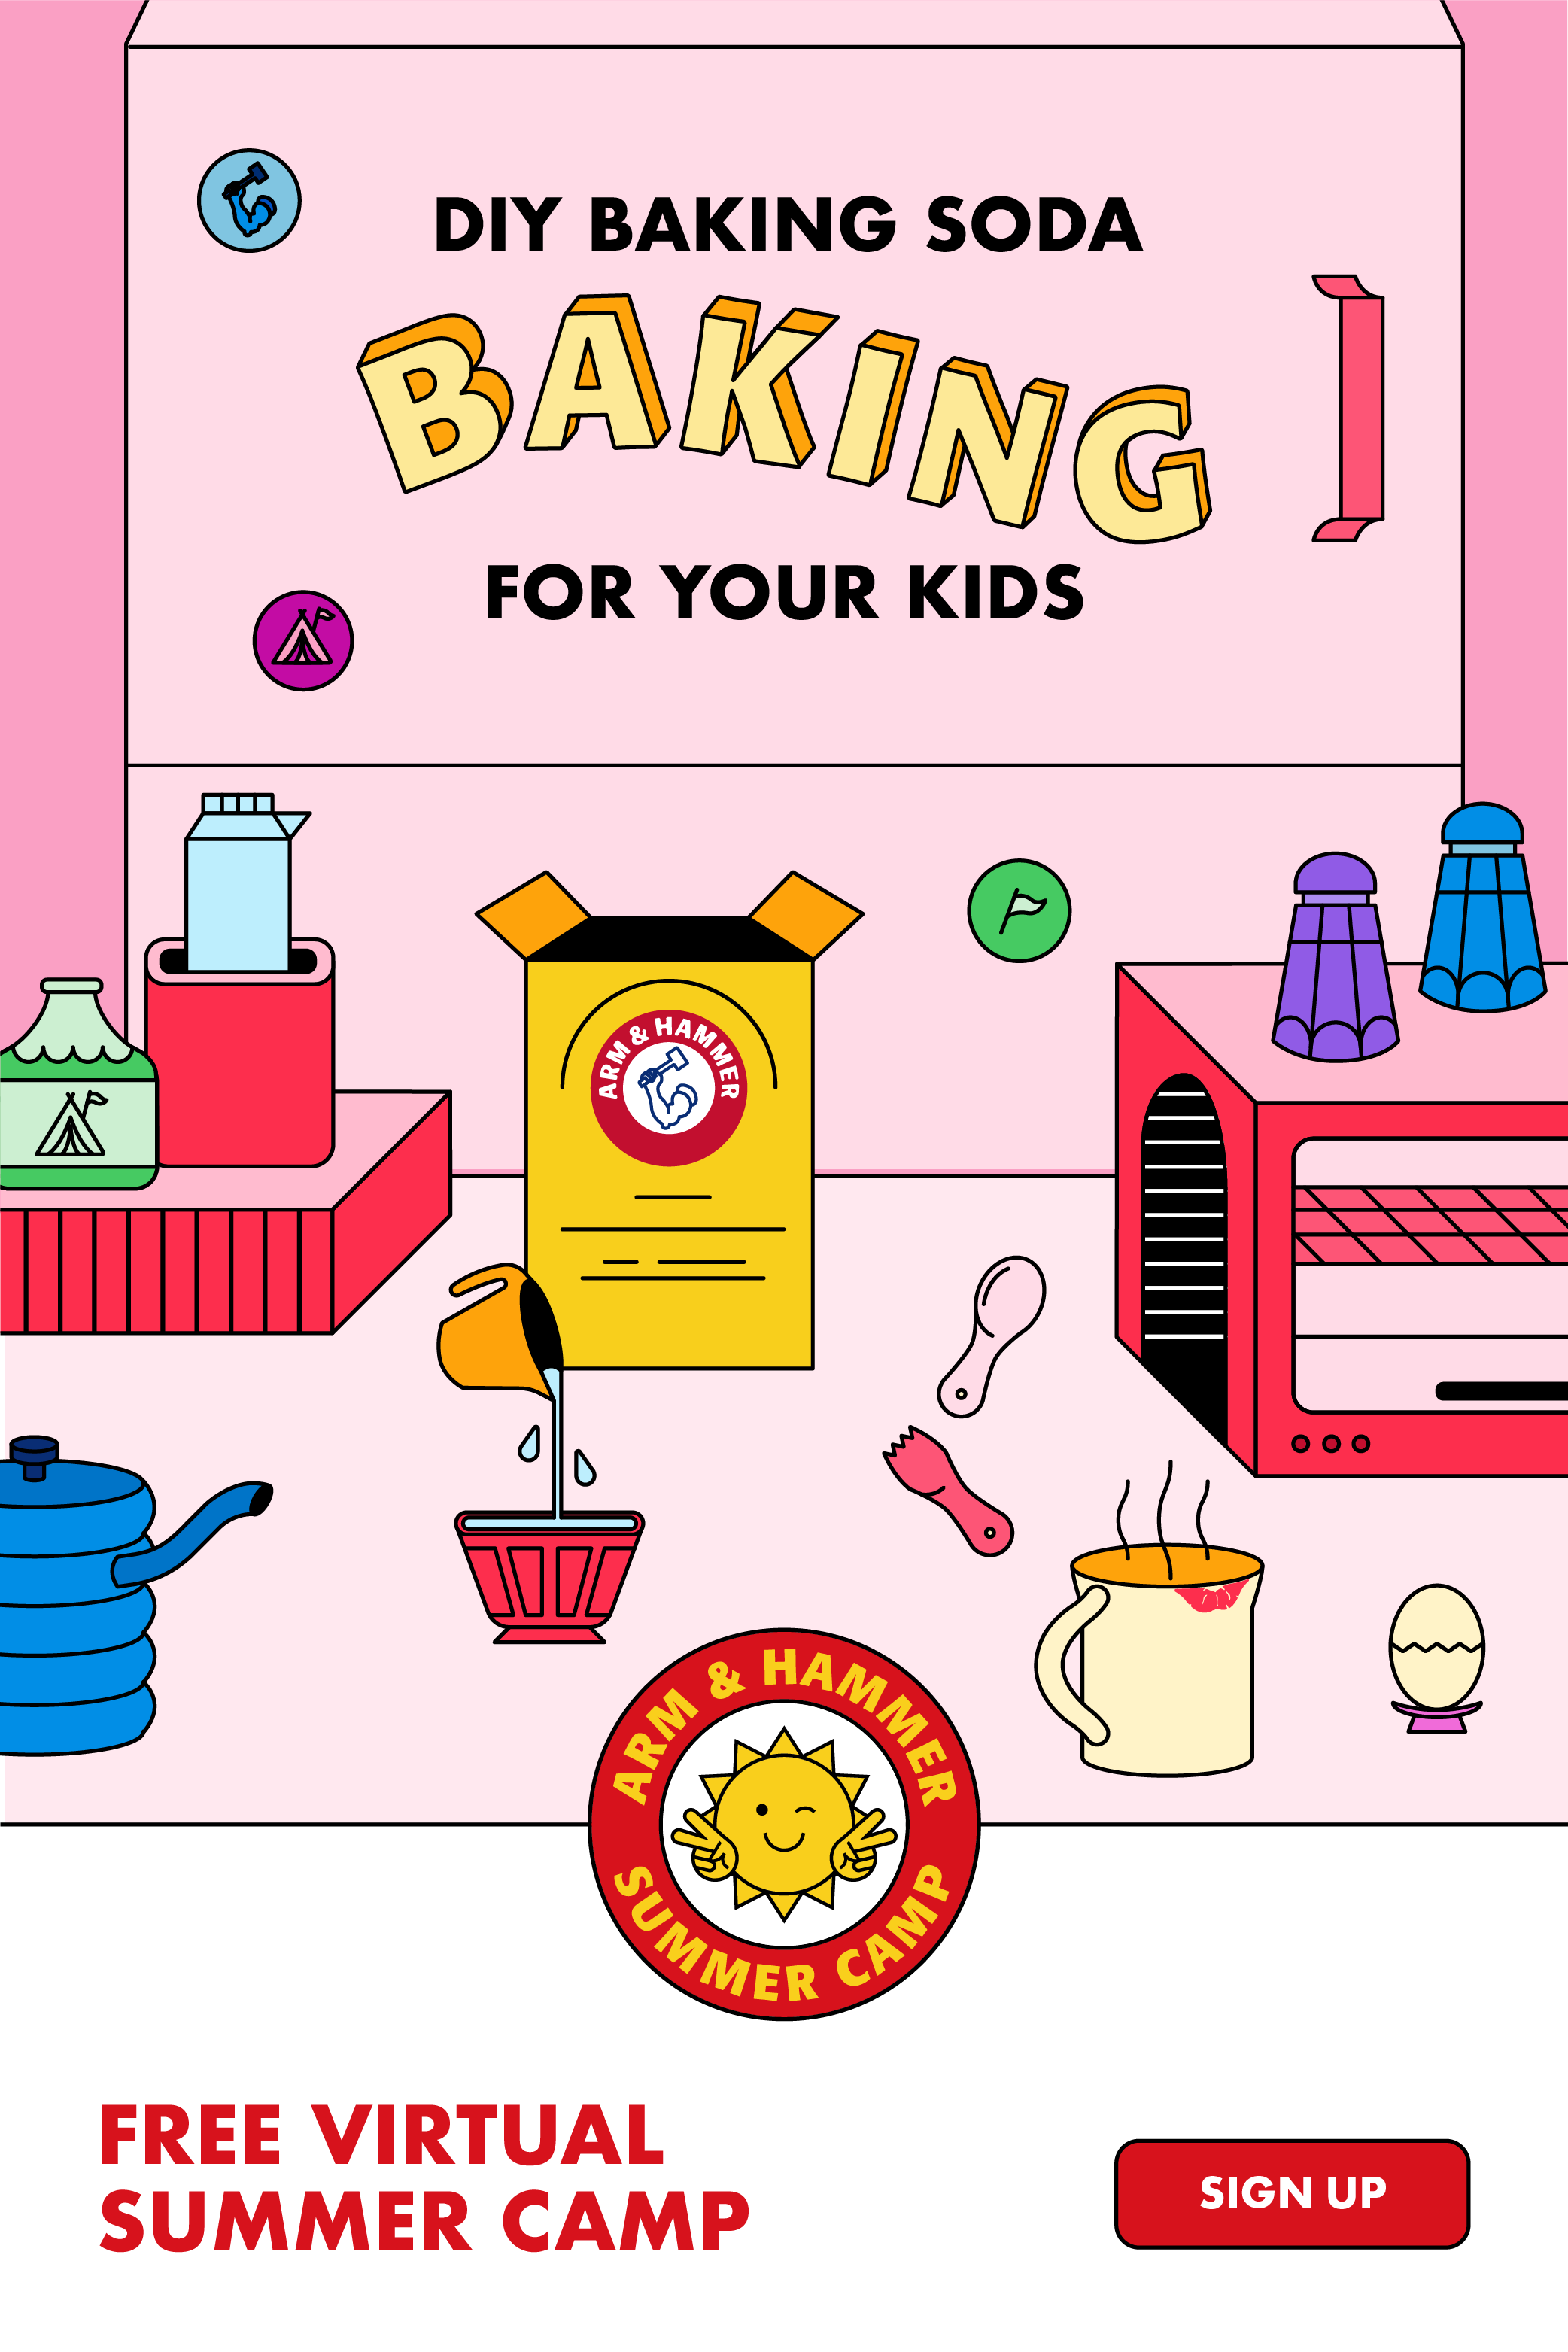 Free Diy On Demand Summer Camp For Kids In 2020 Summer Camps For Kids Summer Camp Kids